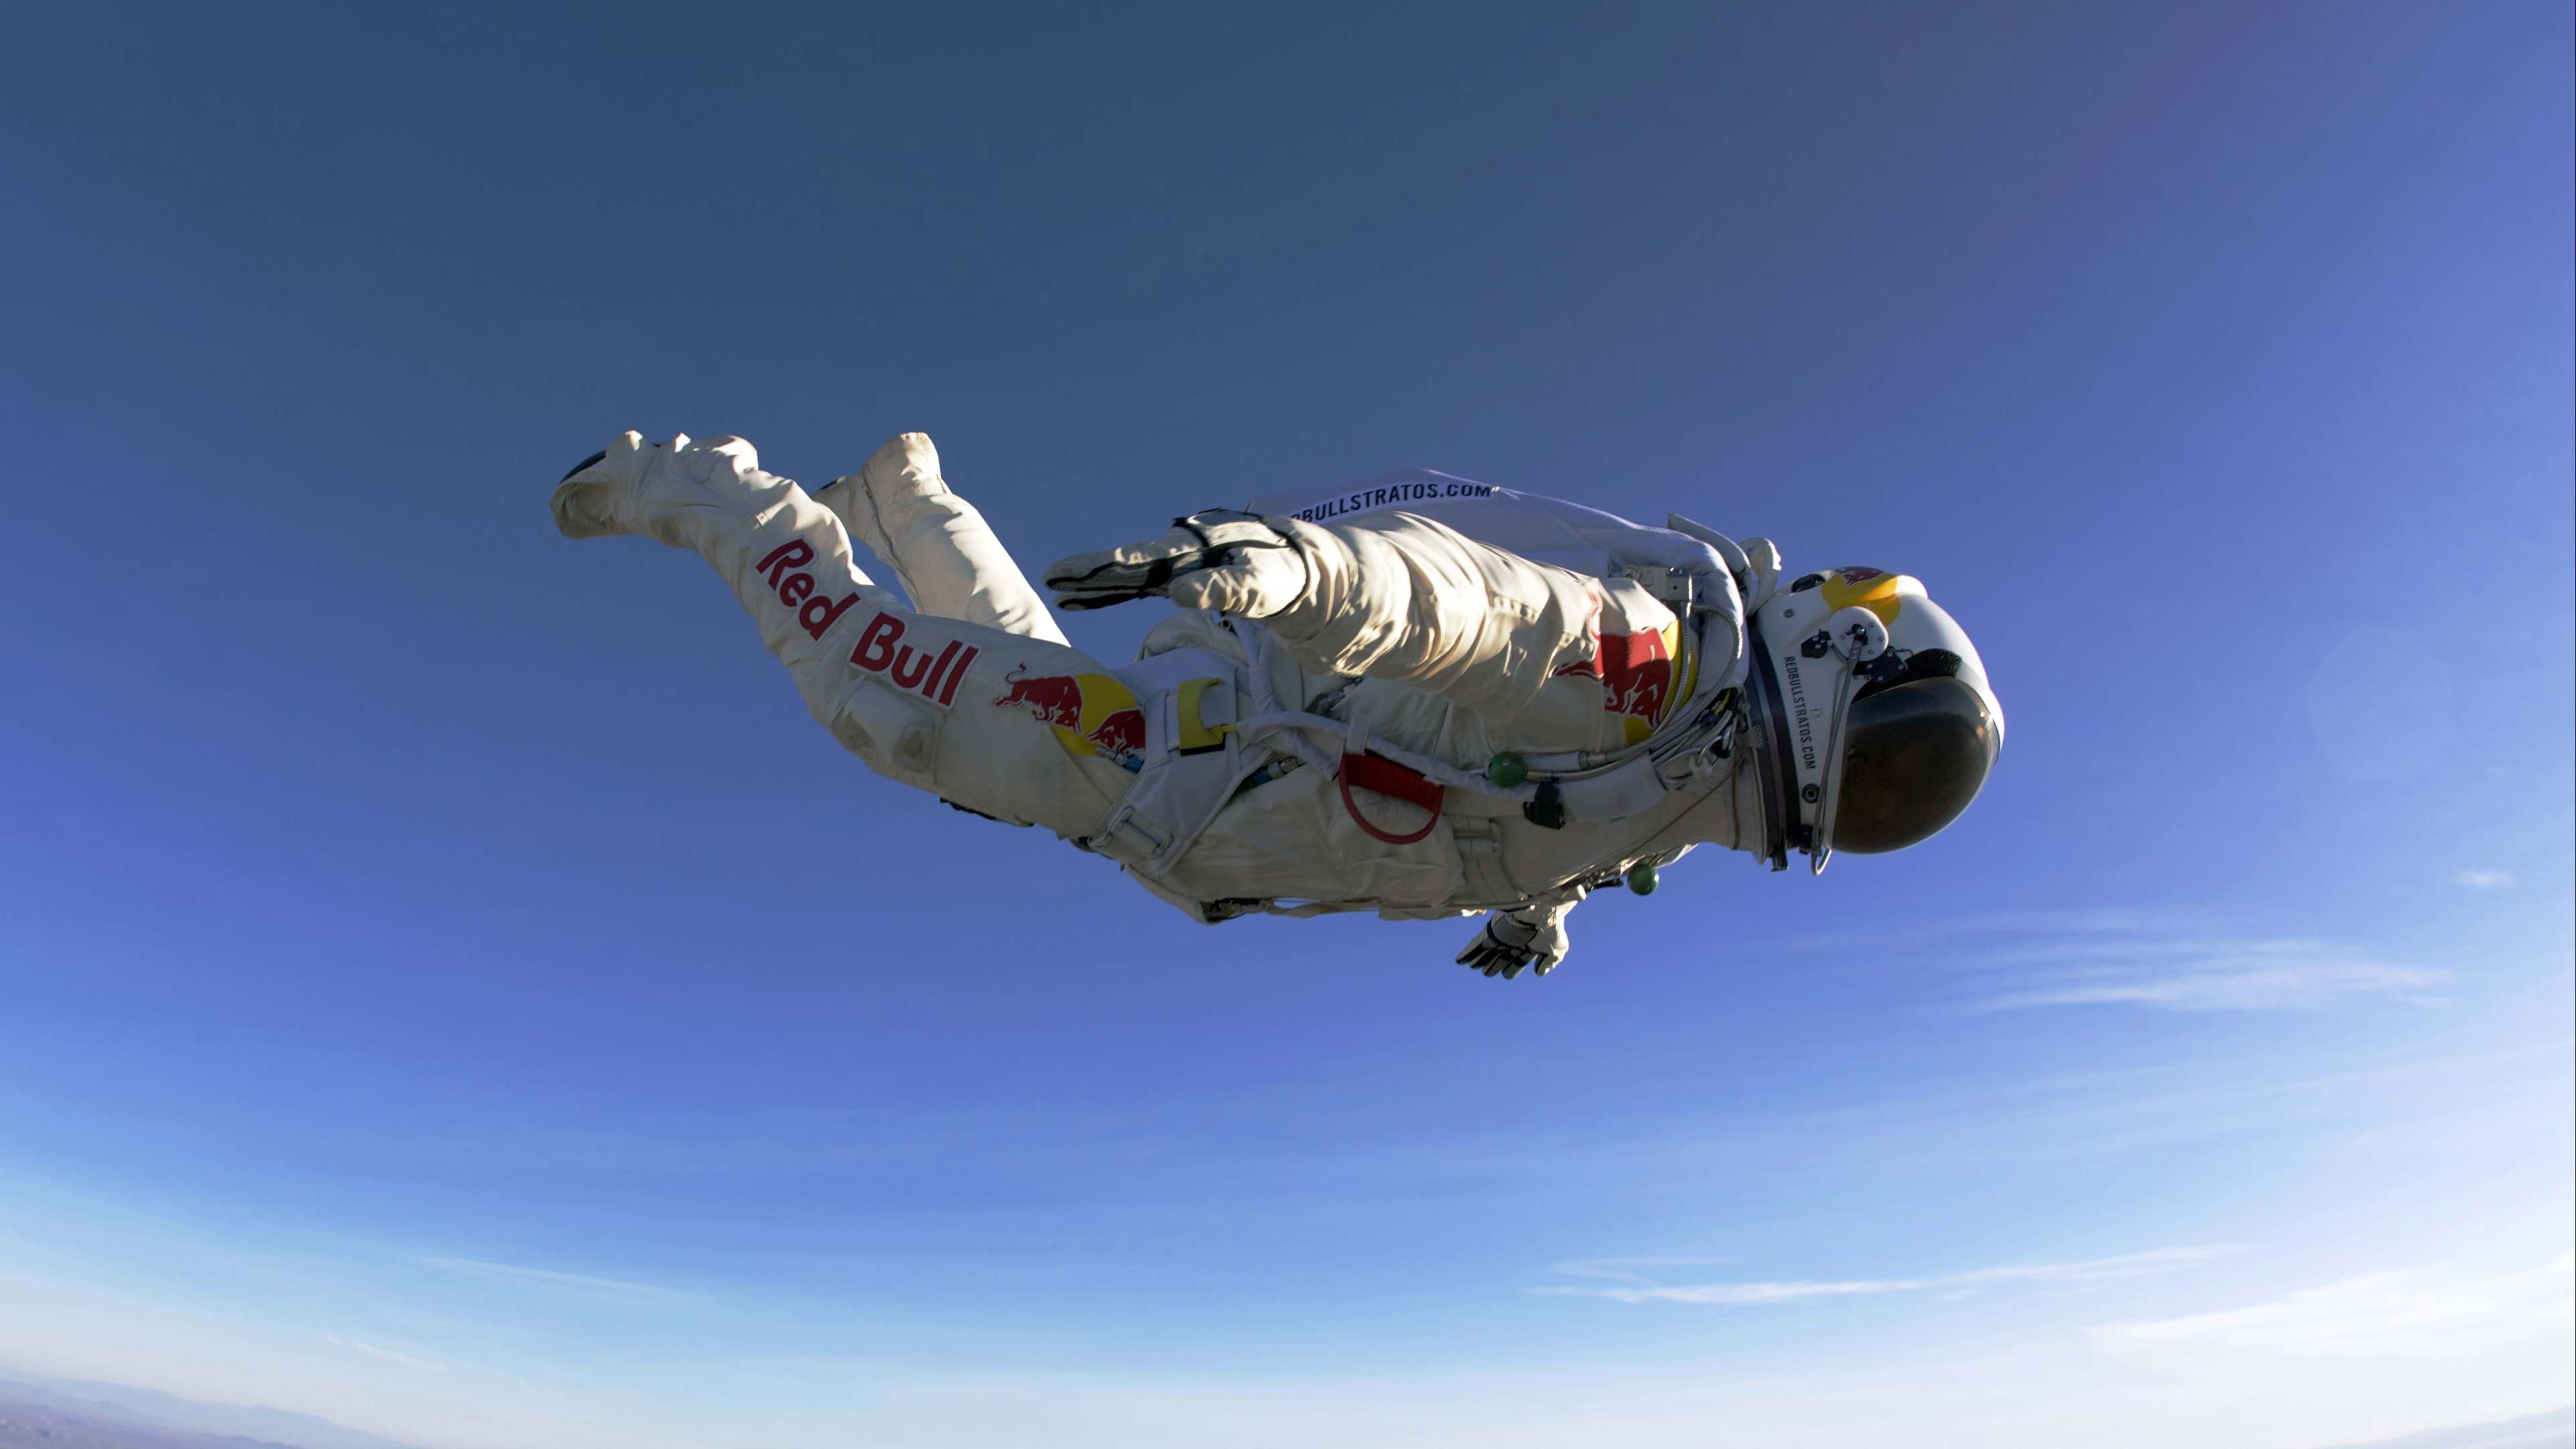 Wallpaper 4k Paratrooper Red Bull Jumping Flying Suit 4k